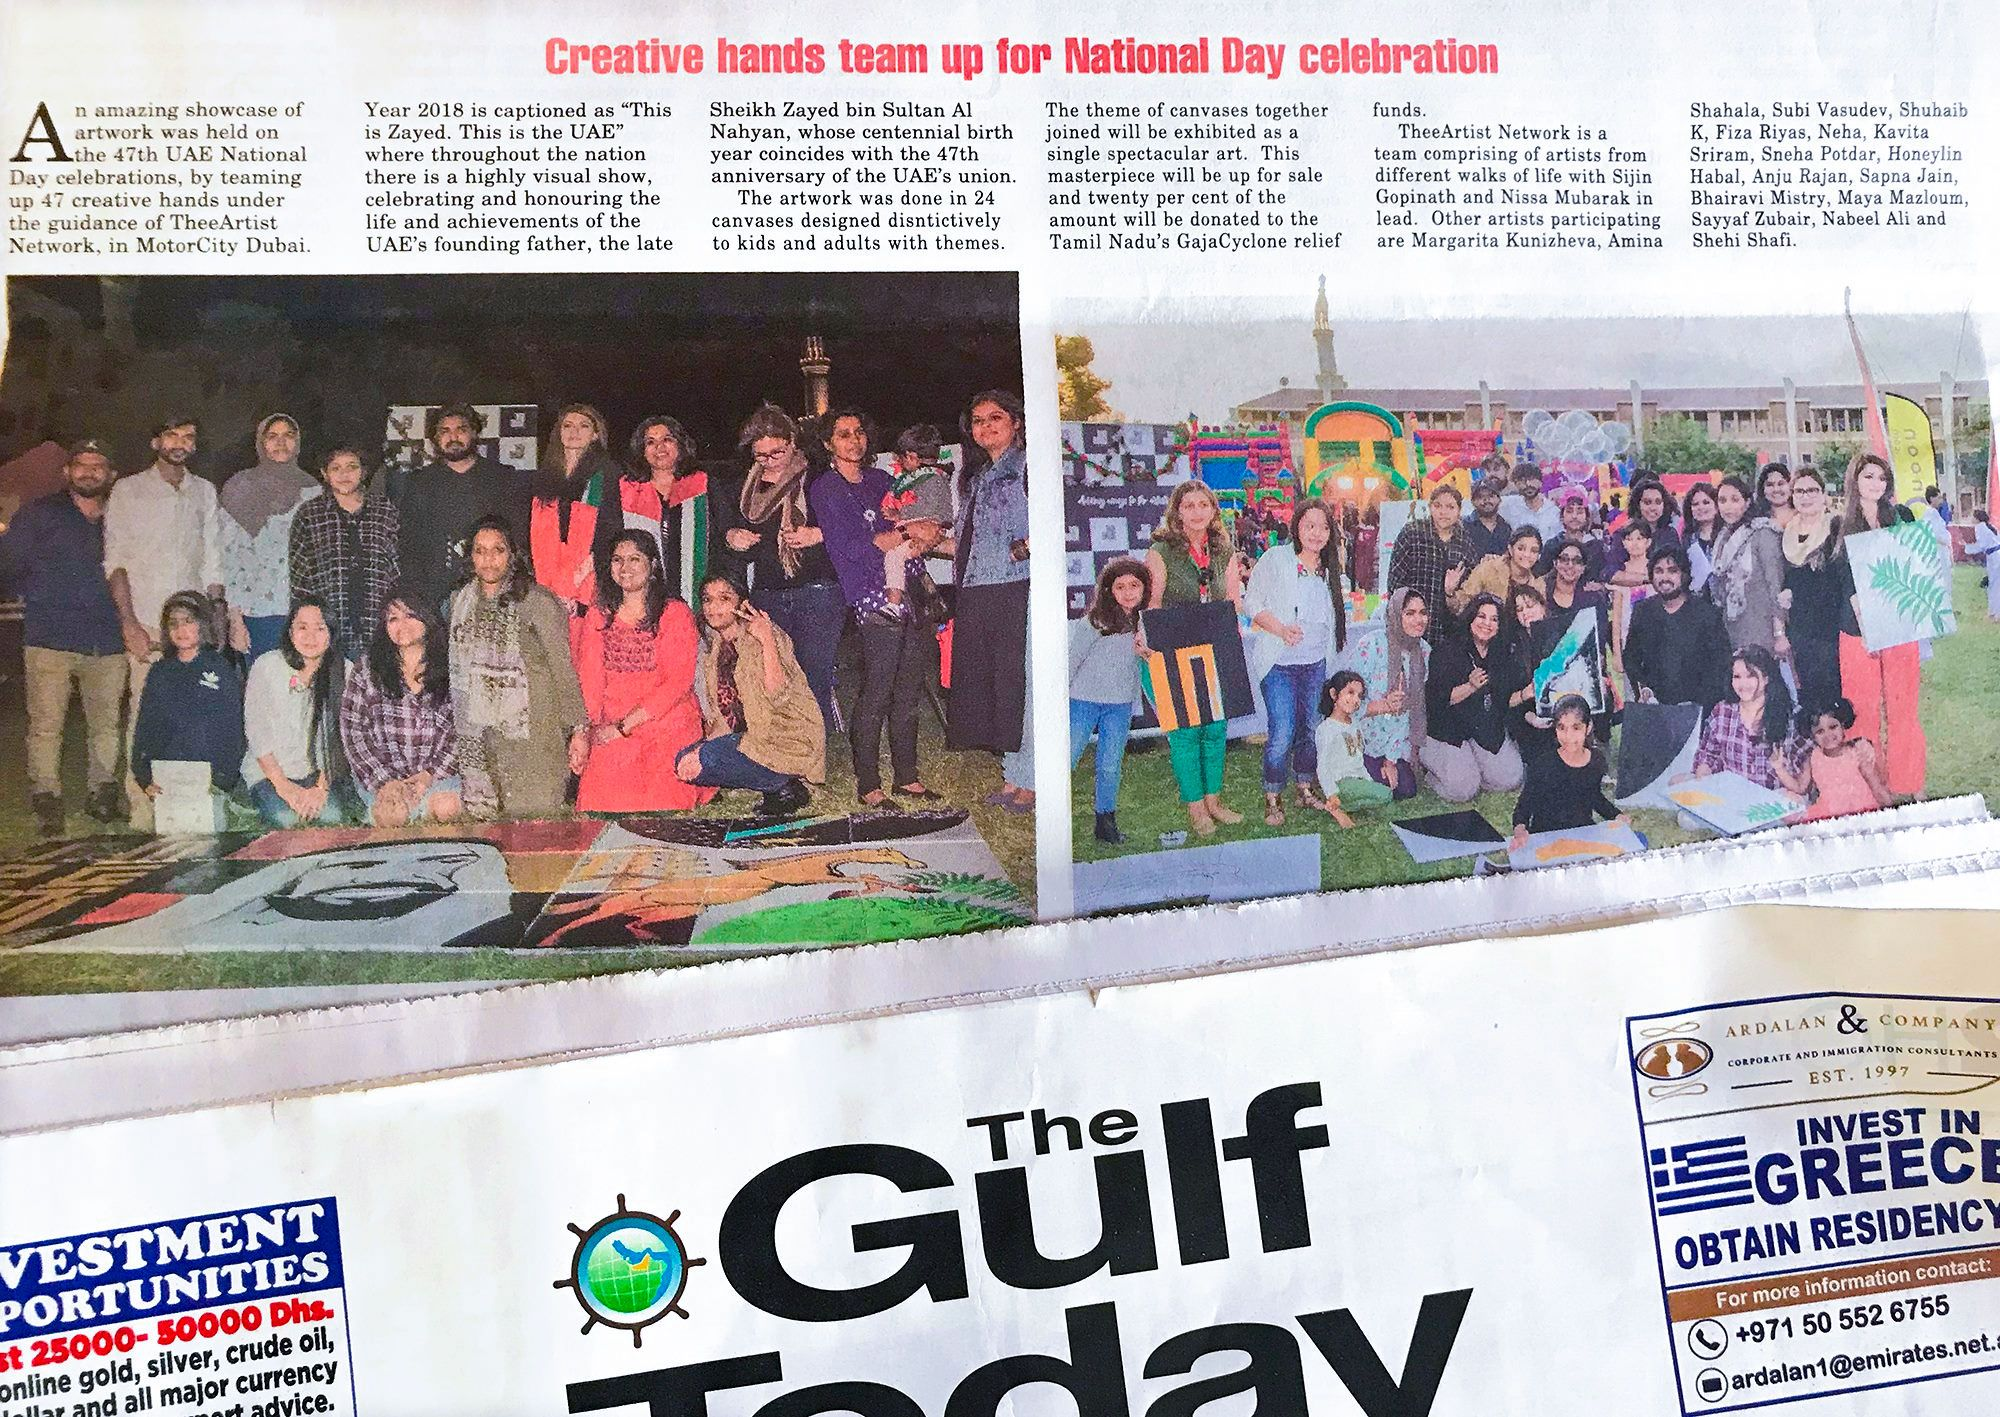 Creative hands team up for the National Day celebration - Gulf Today